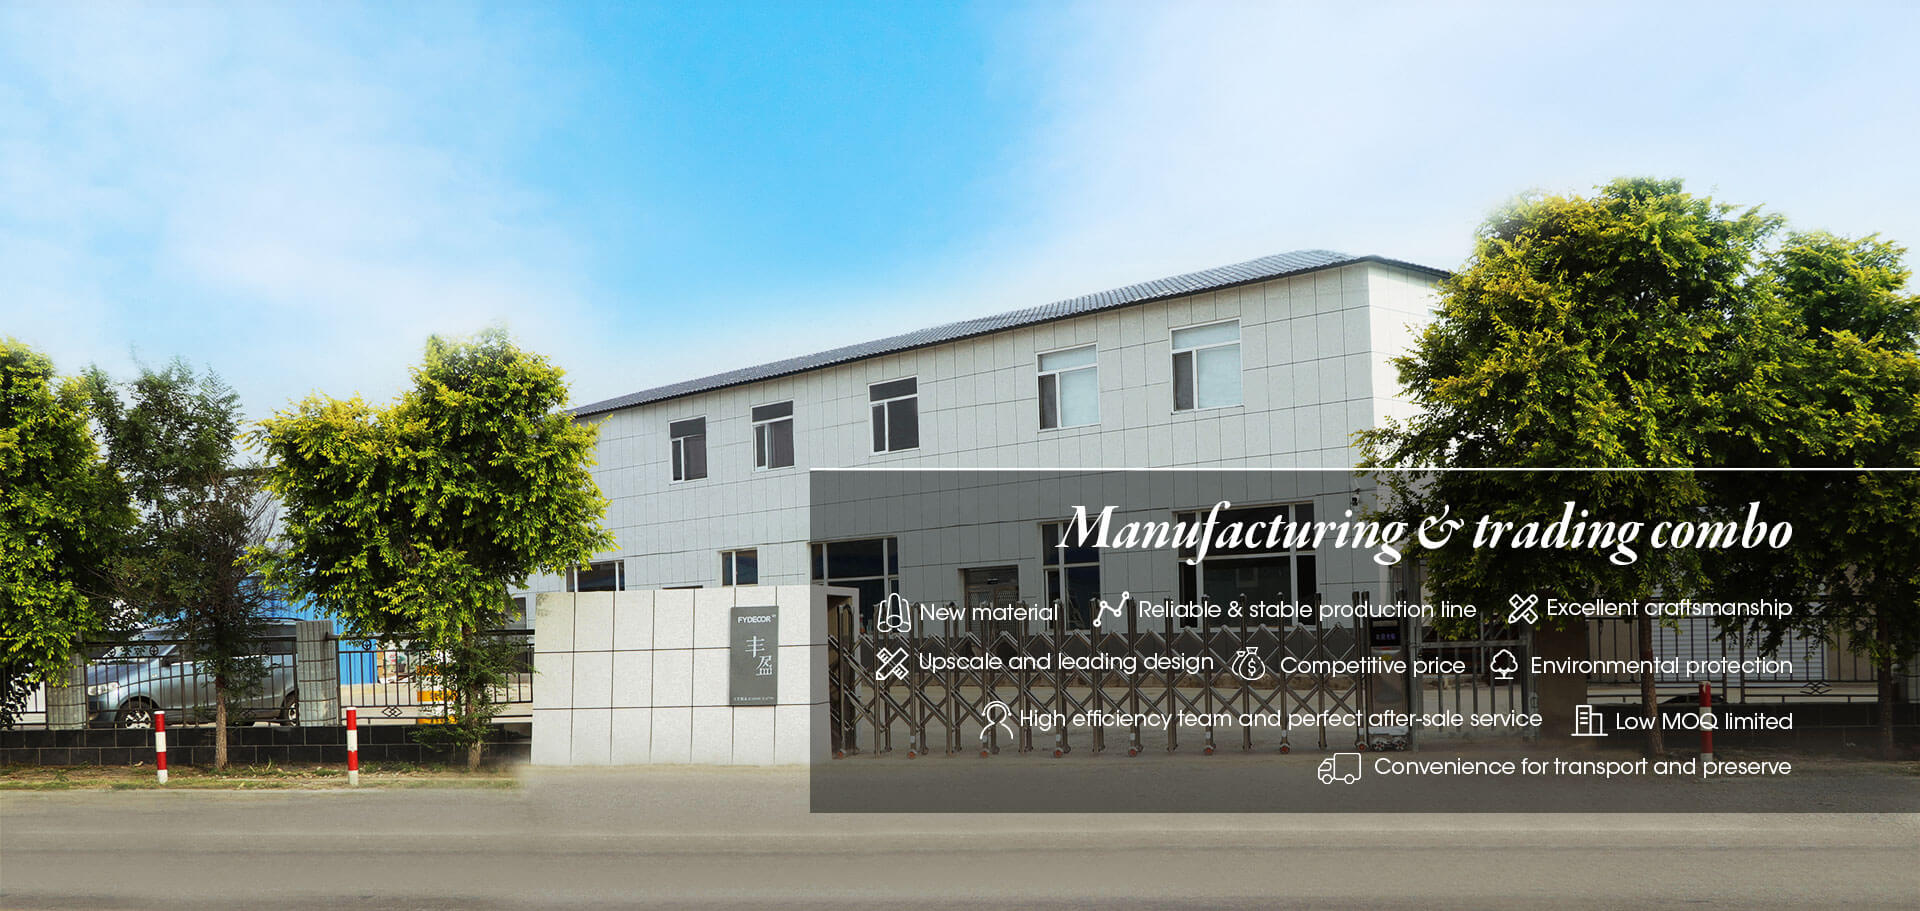 Manufacturing & trading combo